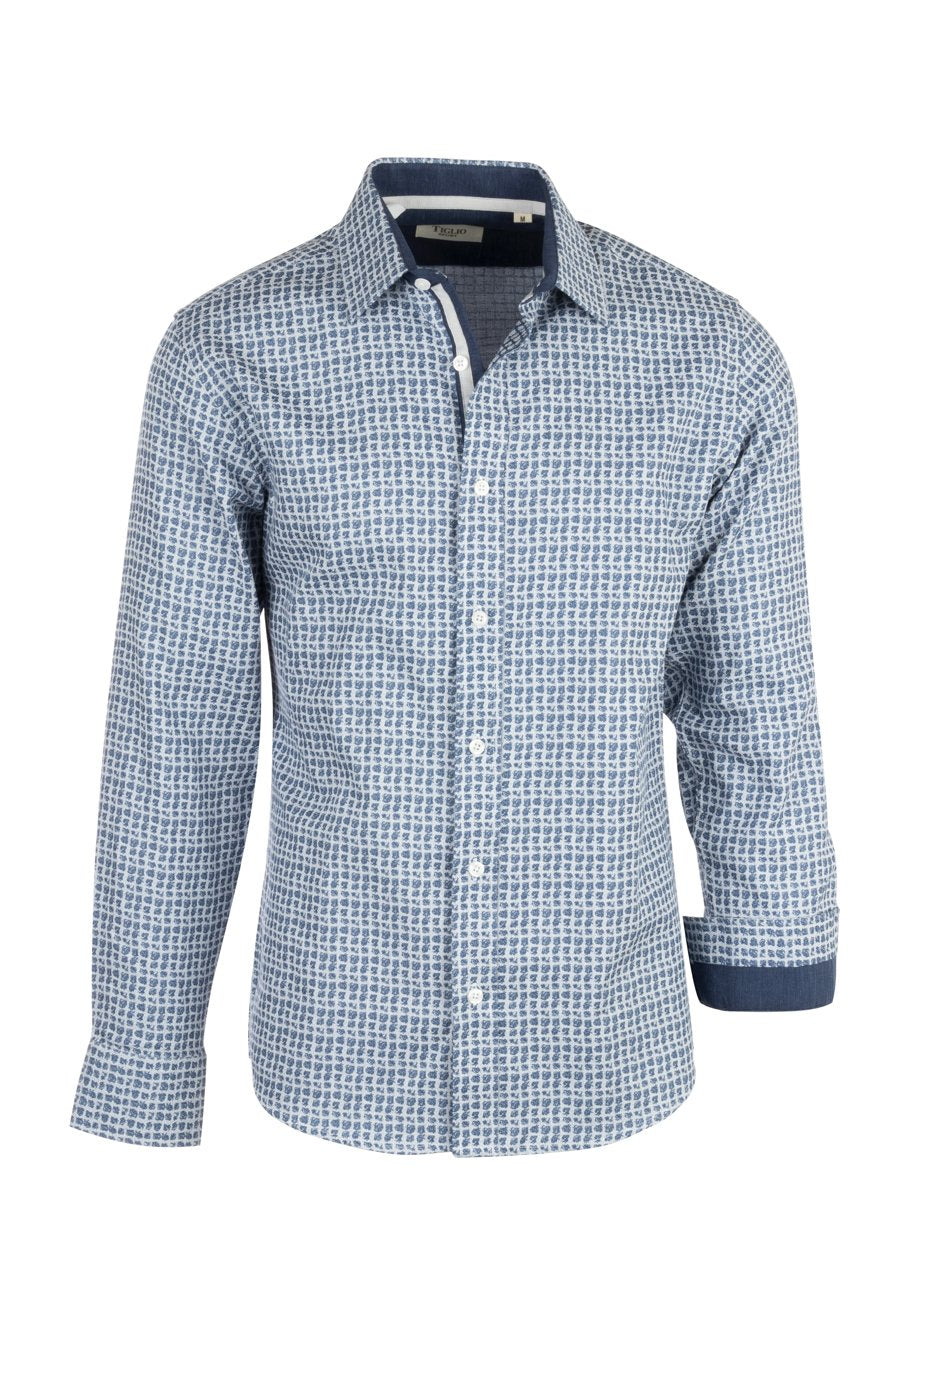 Tiglio Sport White with Blue Pattern Modern Fit Sport Shirt V-90804